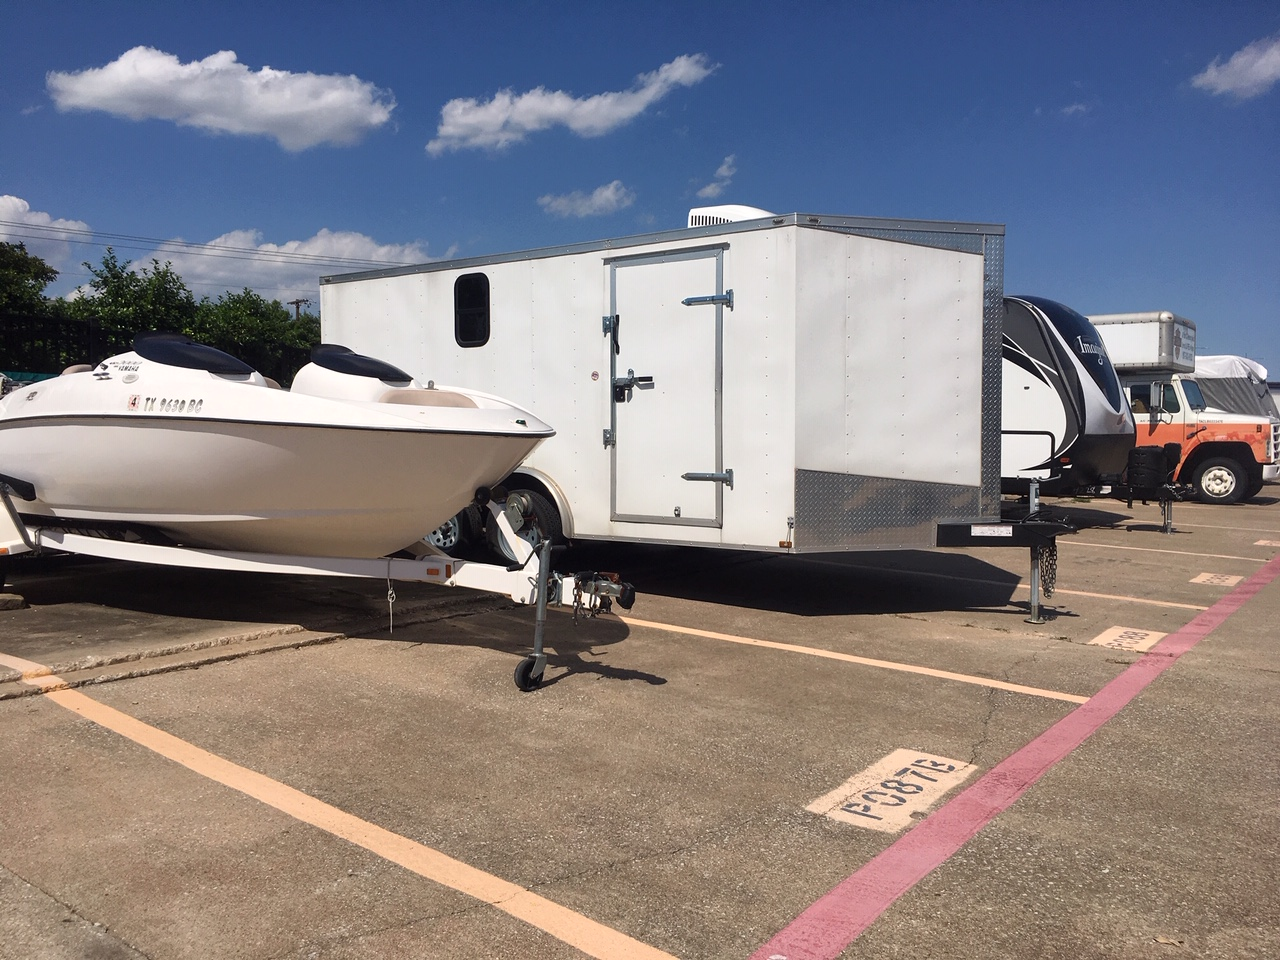 Boat and RV parking Addison